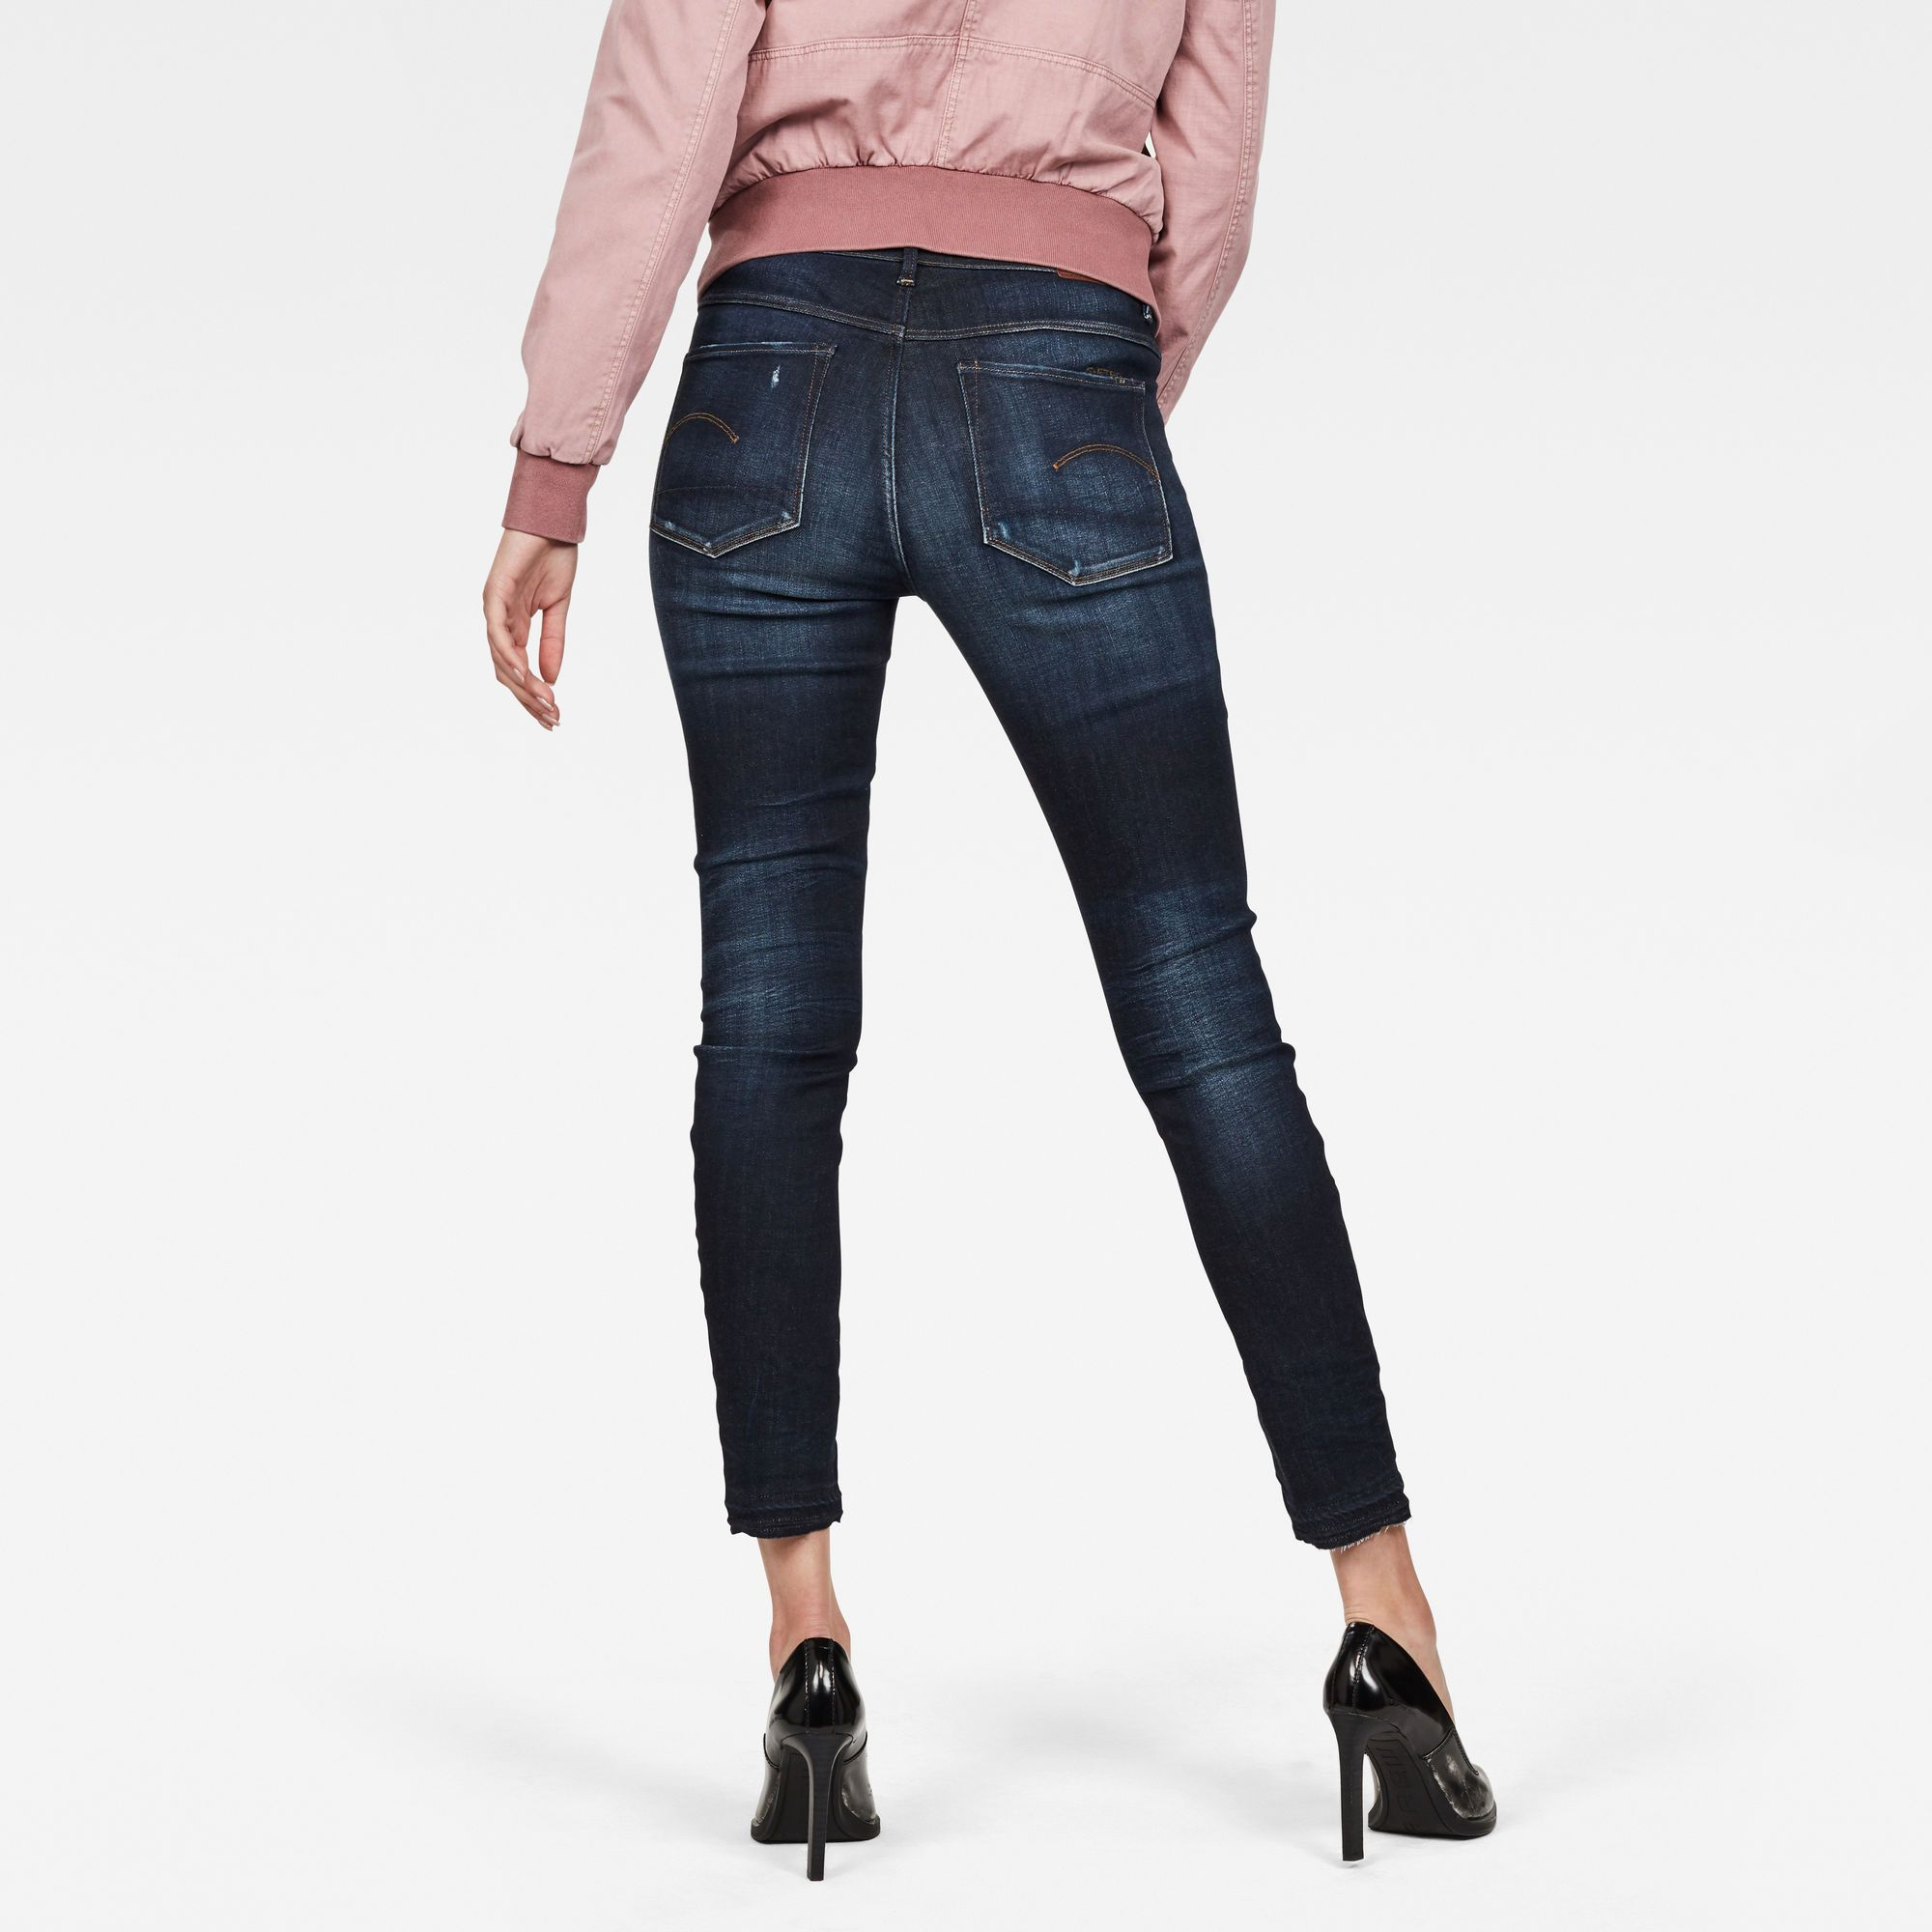 G-Star RAW 3301 High Skinny Ripped Edge Ankle Jeans